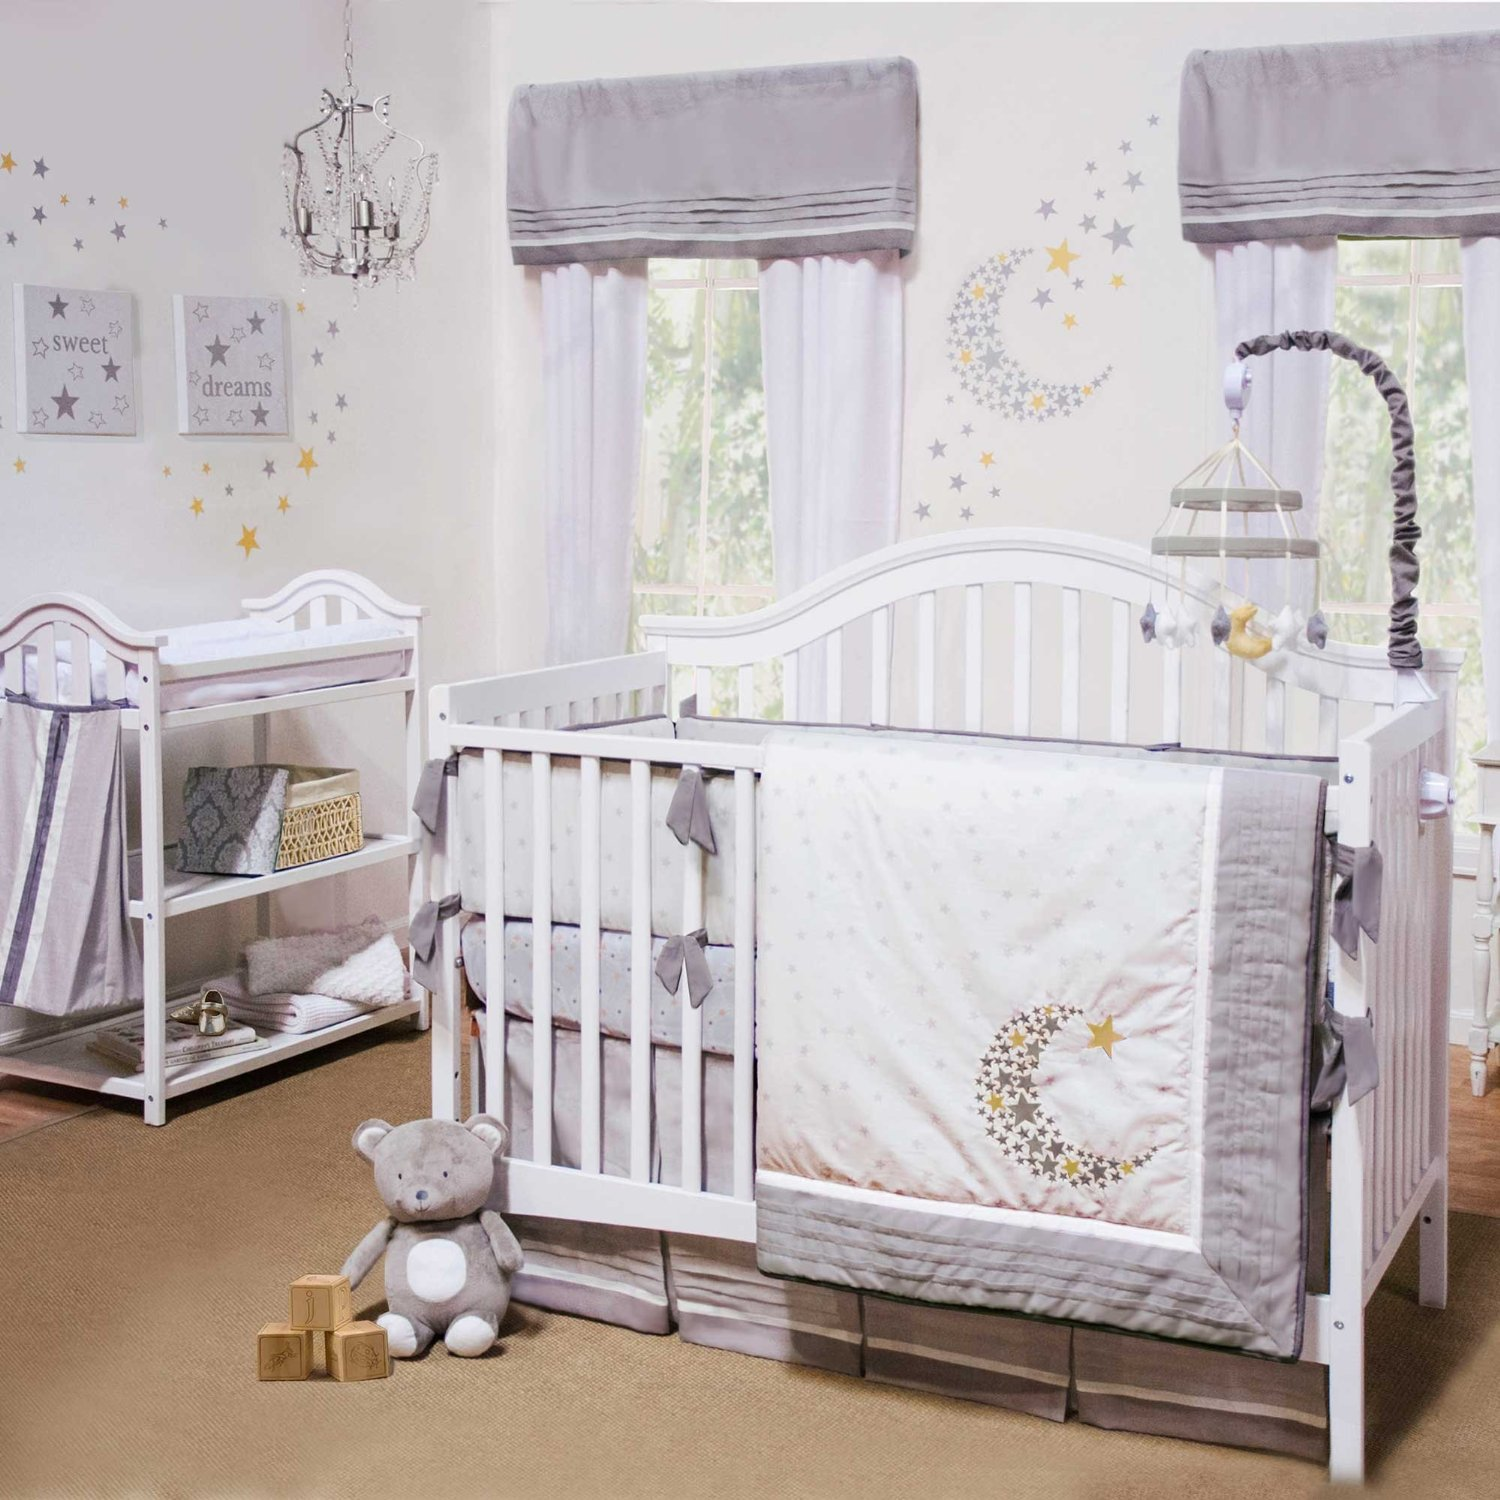 eefc0ec58 Baby Depot Crib Bedding grey crib bedding uk creative ideas of baby cribs